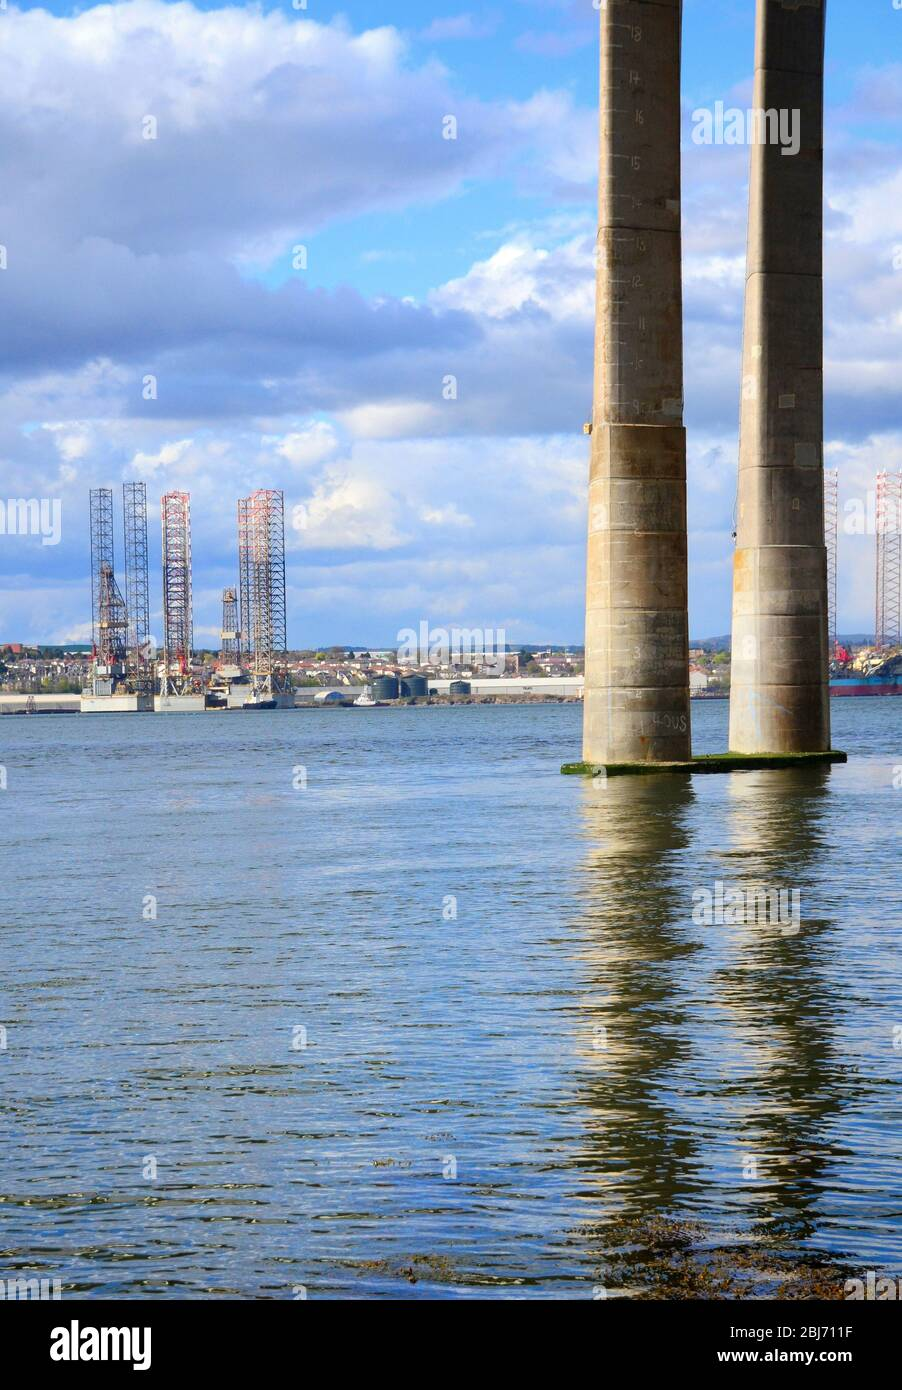 Oil rig drilling platforms  at Dundee Dockside with pier colums of Tay road bridge in foreground Stock Photo